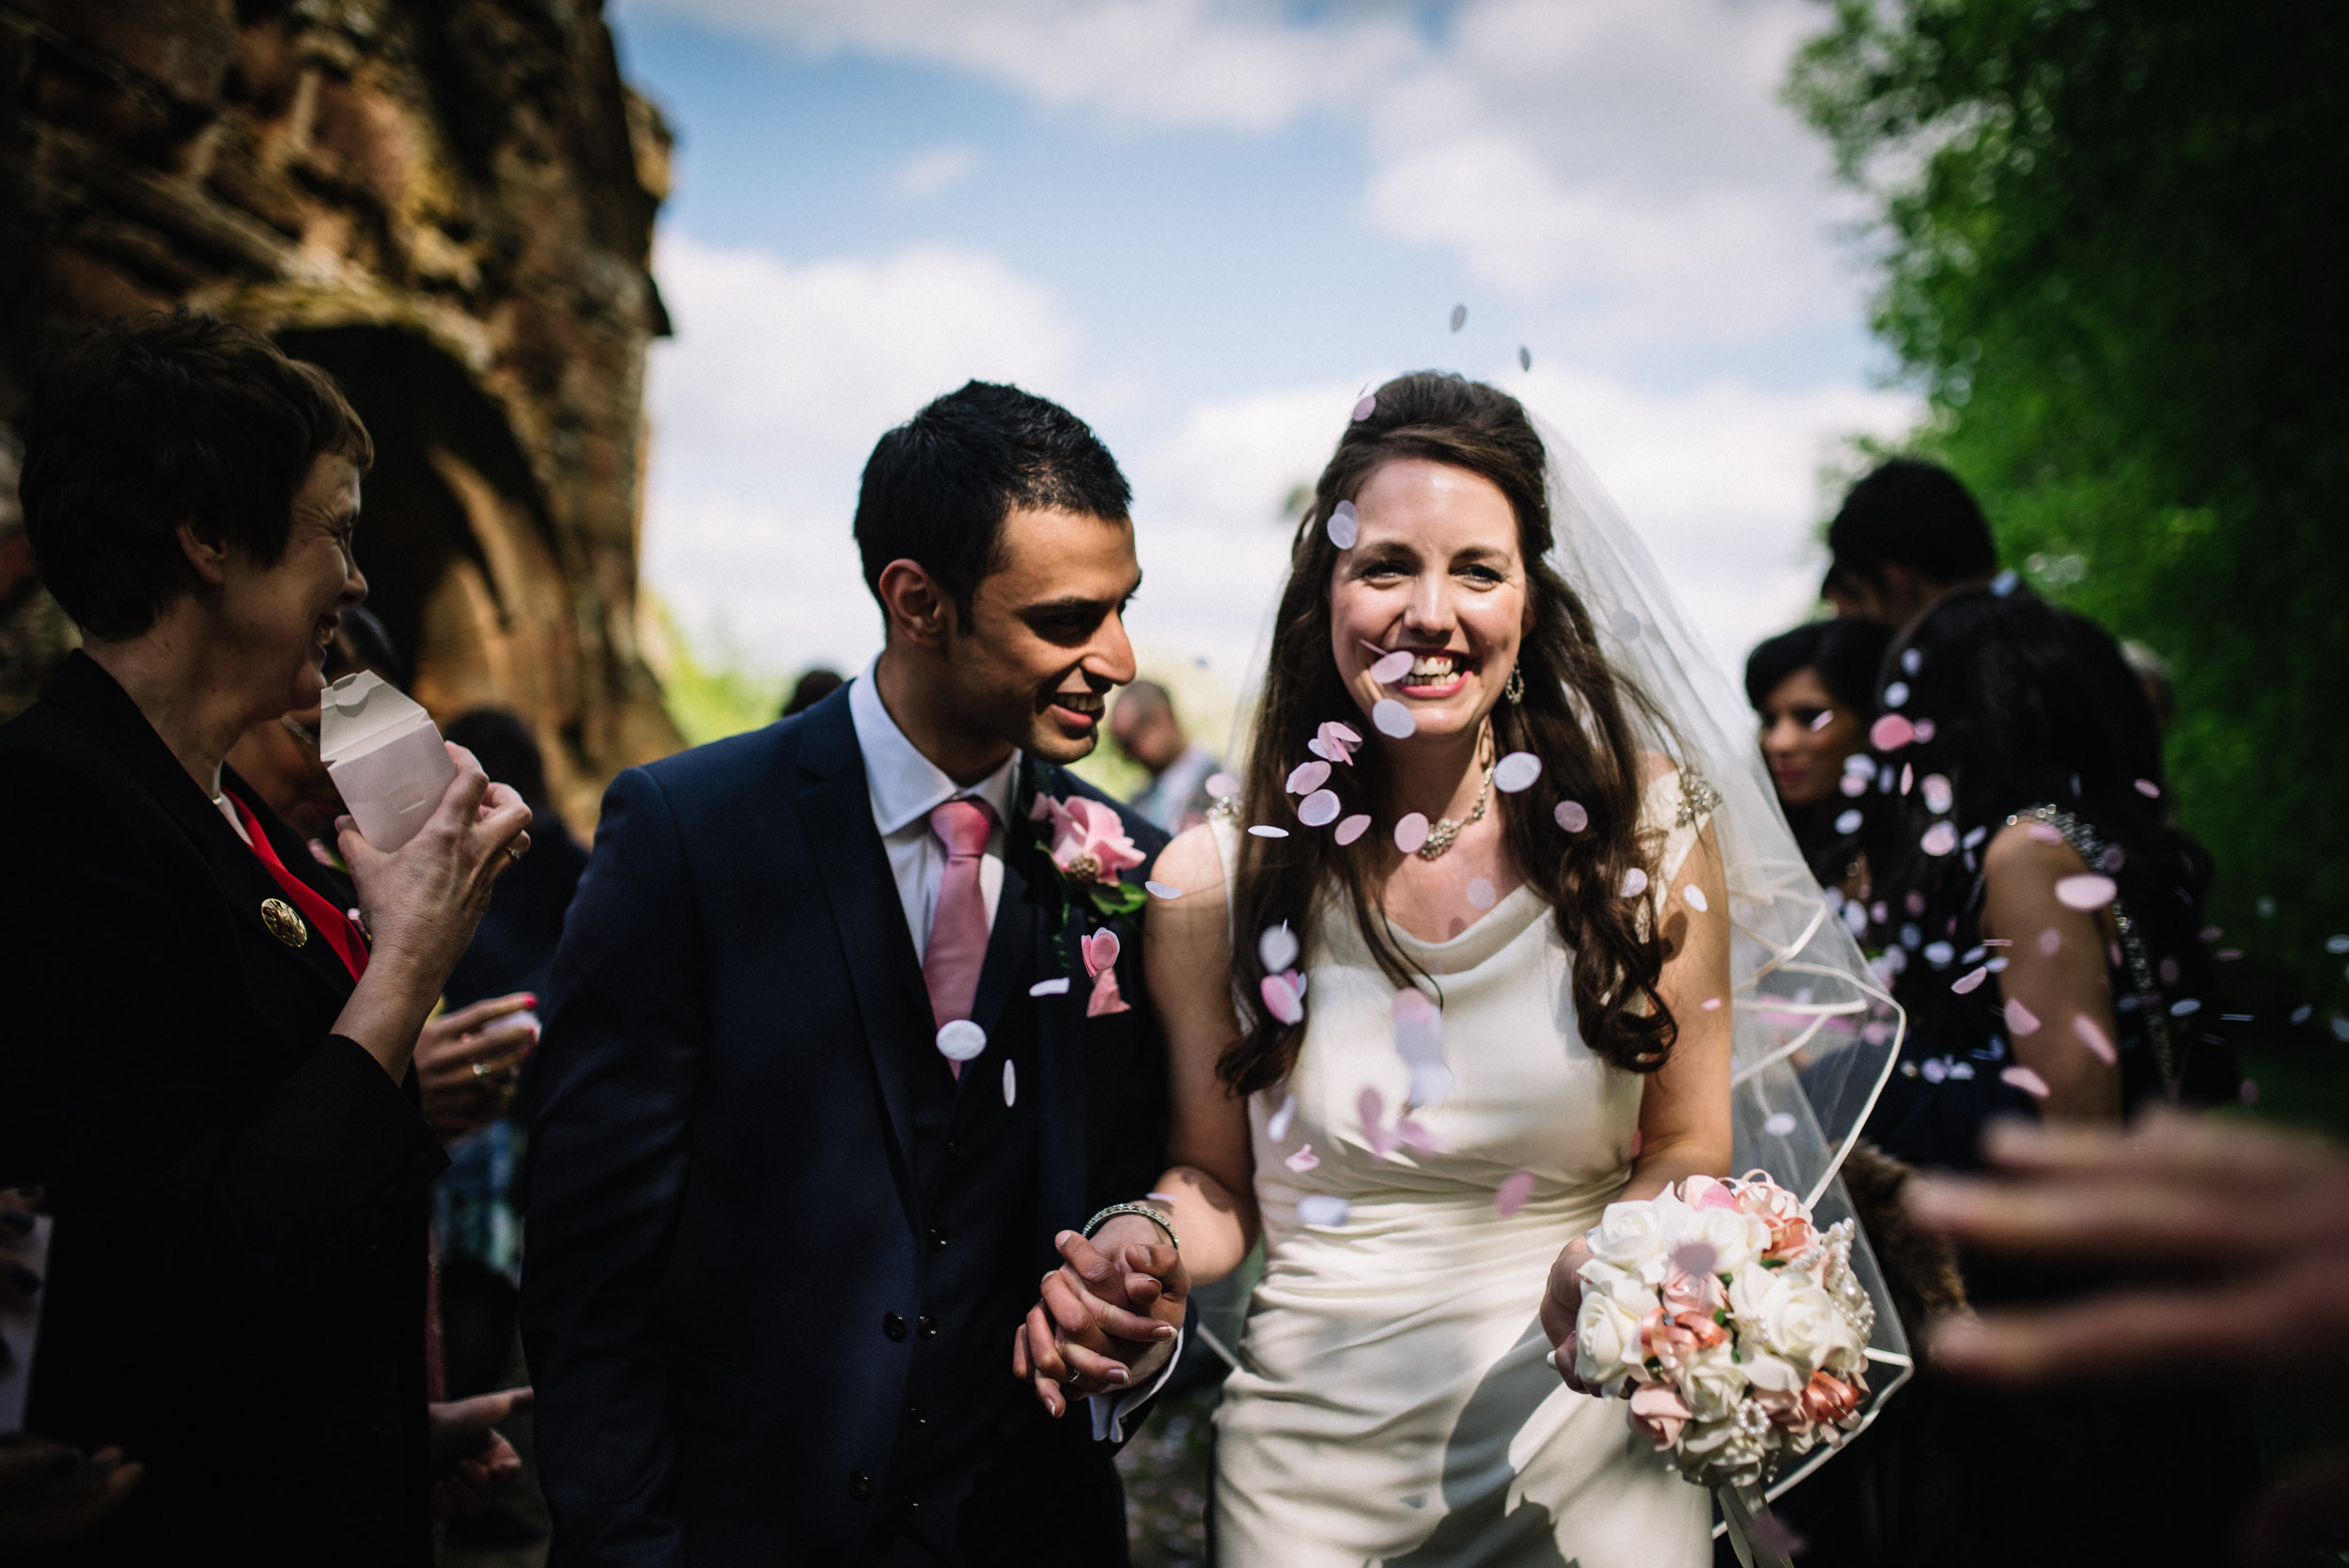 Just married confetti shot outside village church